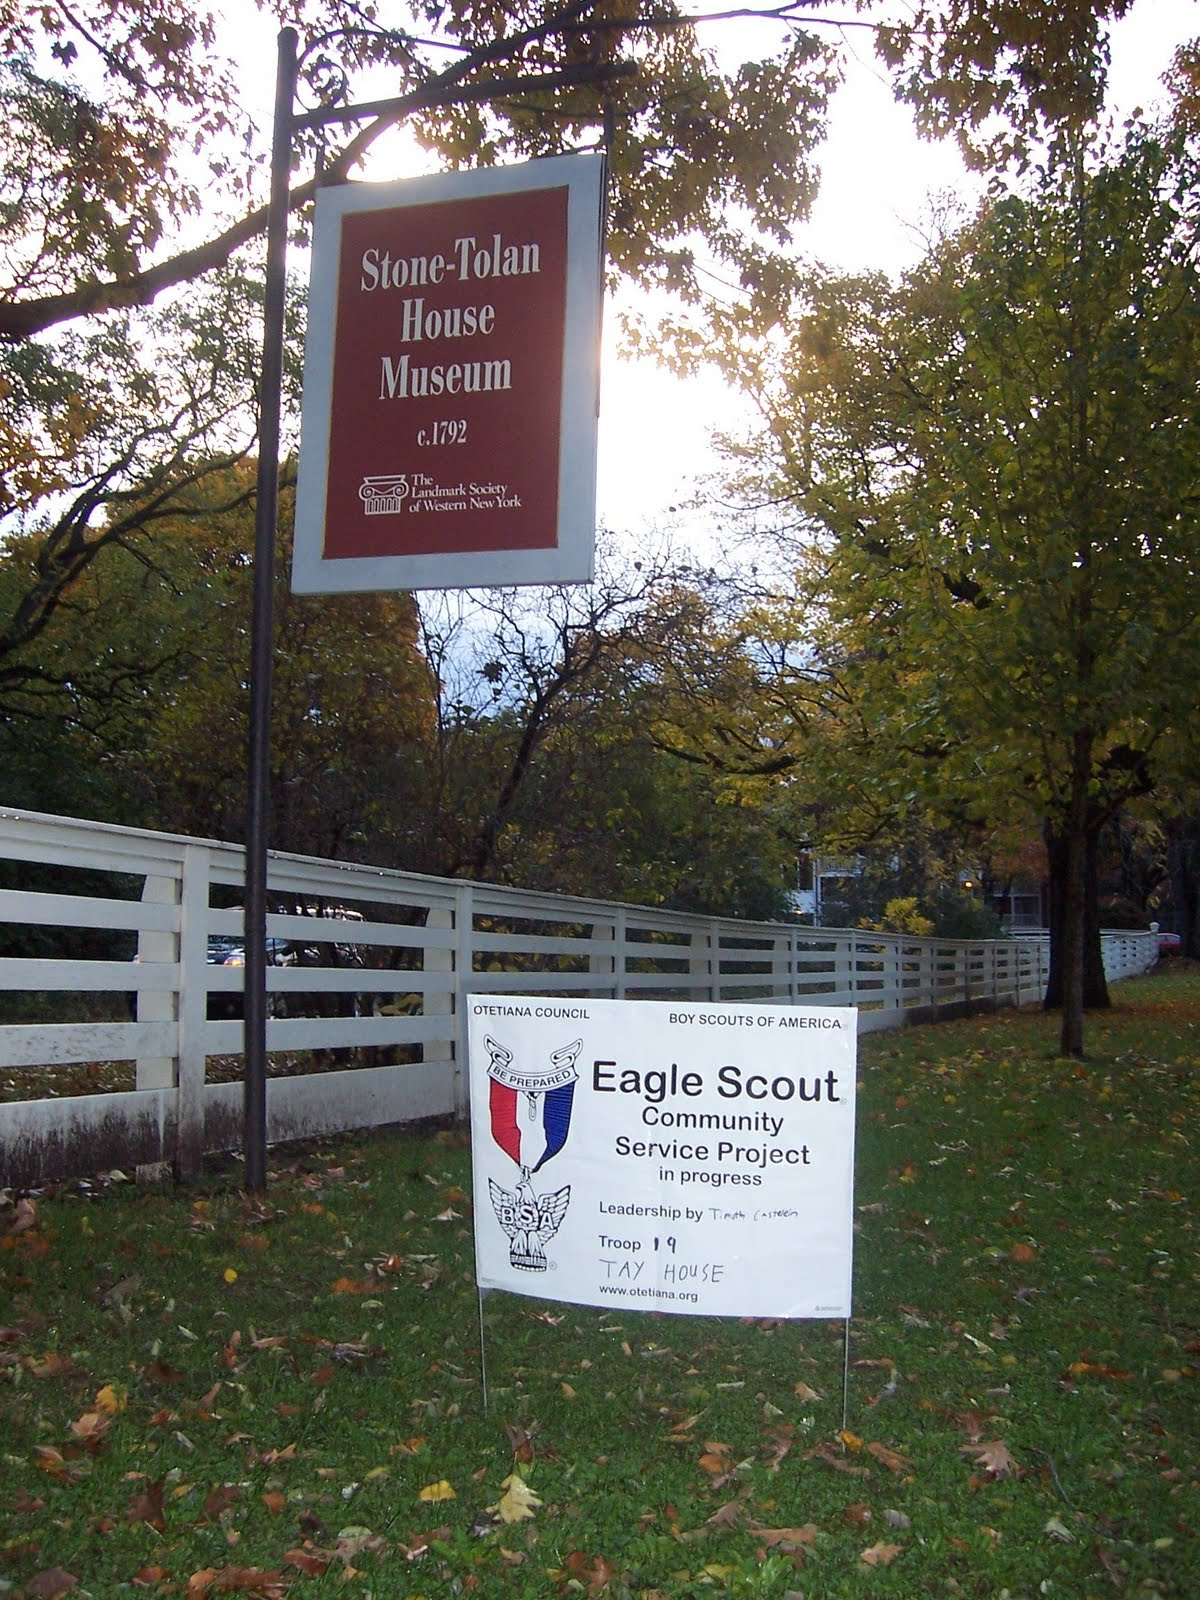 eagle scout projects Following is a general list of possible eagle scout project ideas offered through riverton city contact the appropriate person department to see if that project, or a similar project, is available.